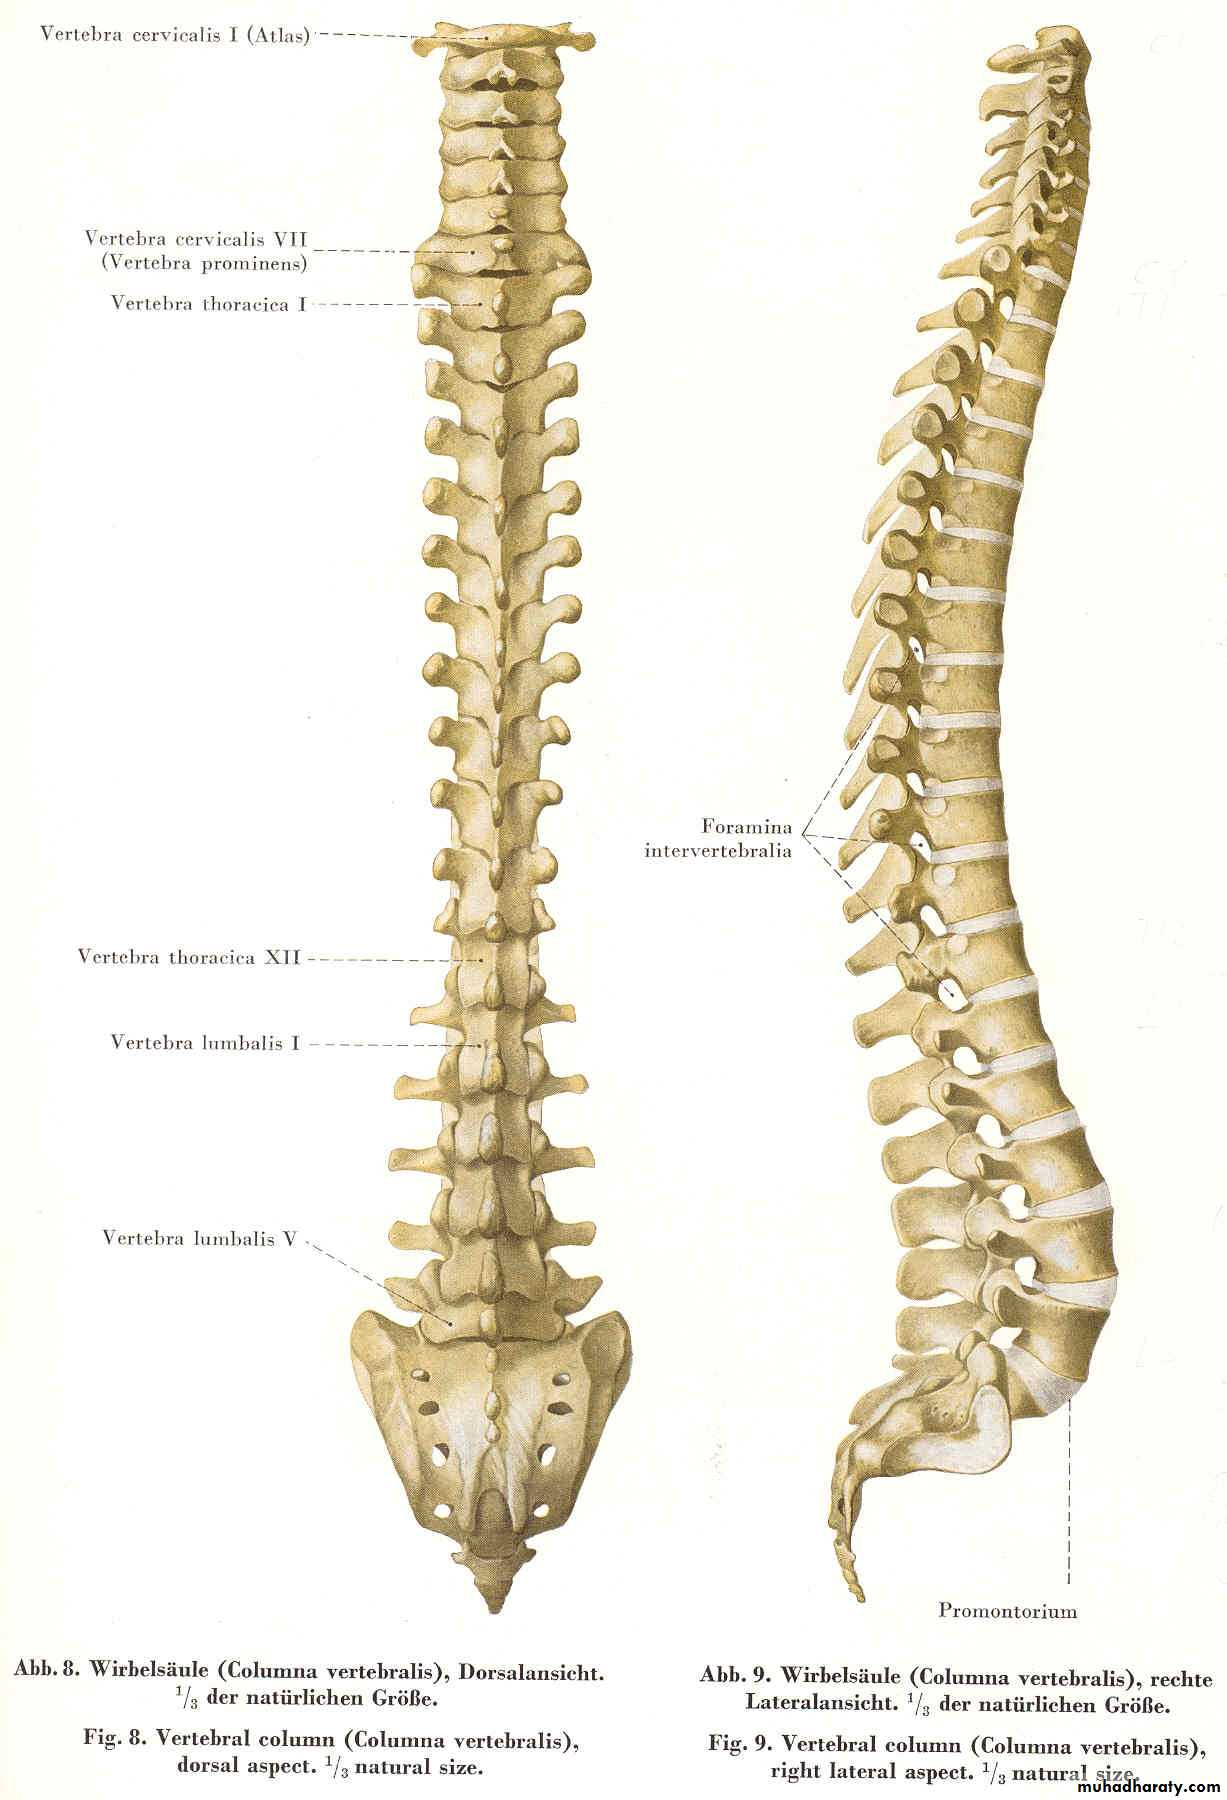 Injuries of the thoracic spine pptx - د.داؤود العبيدي - Muhadharaty